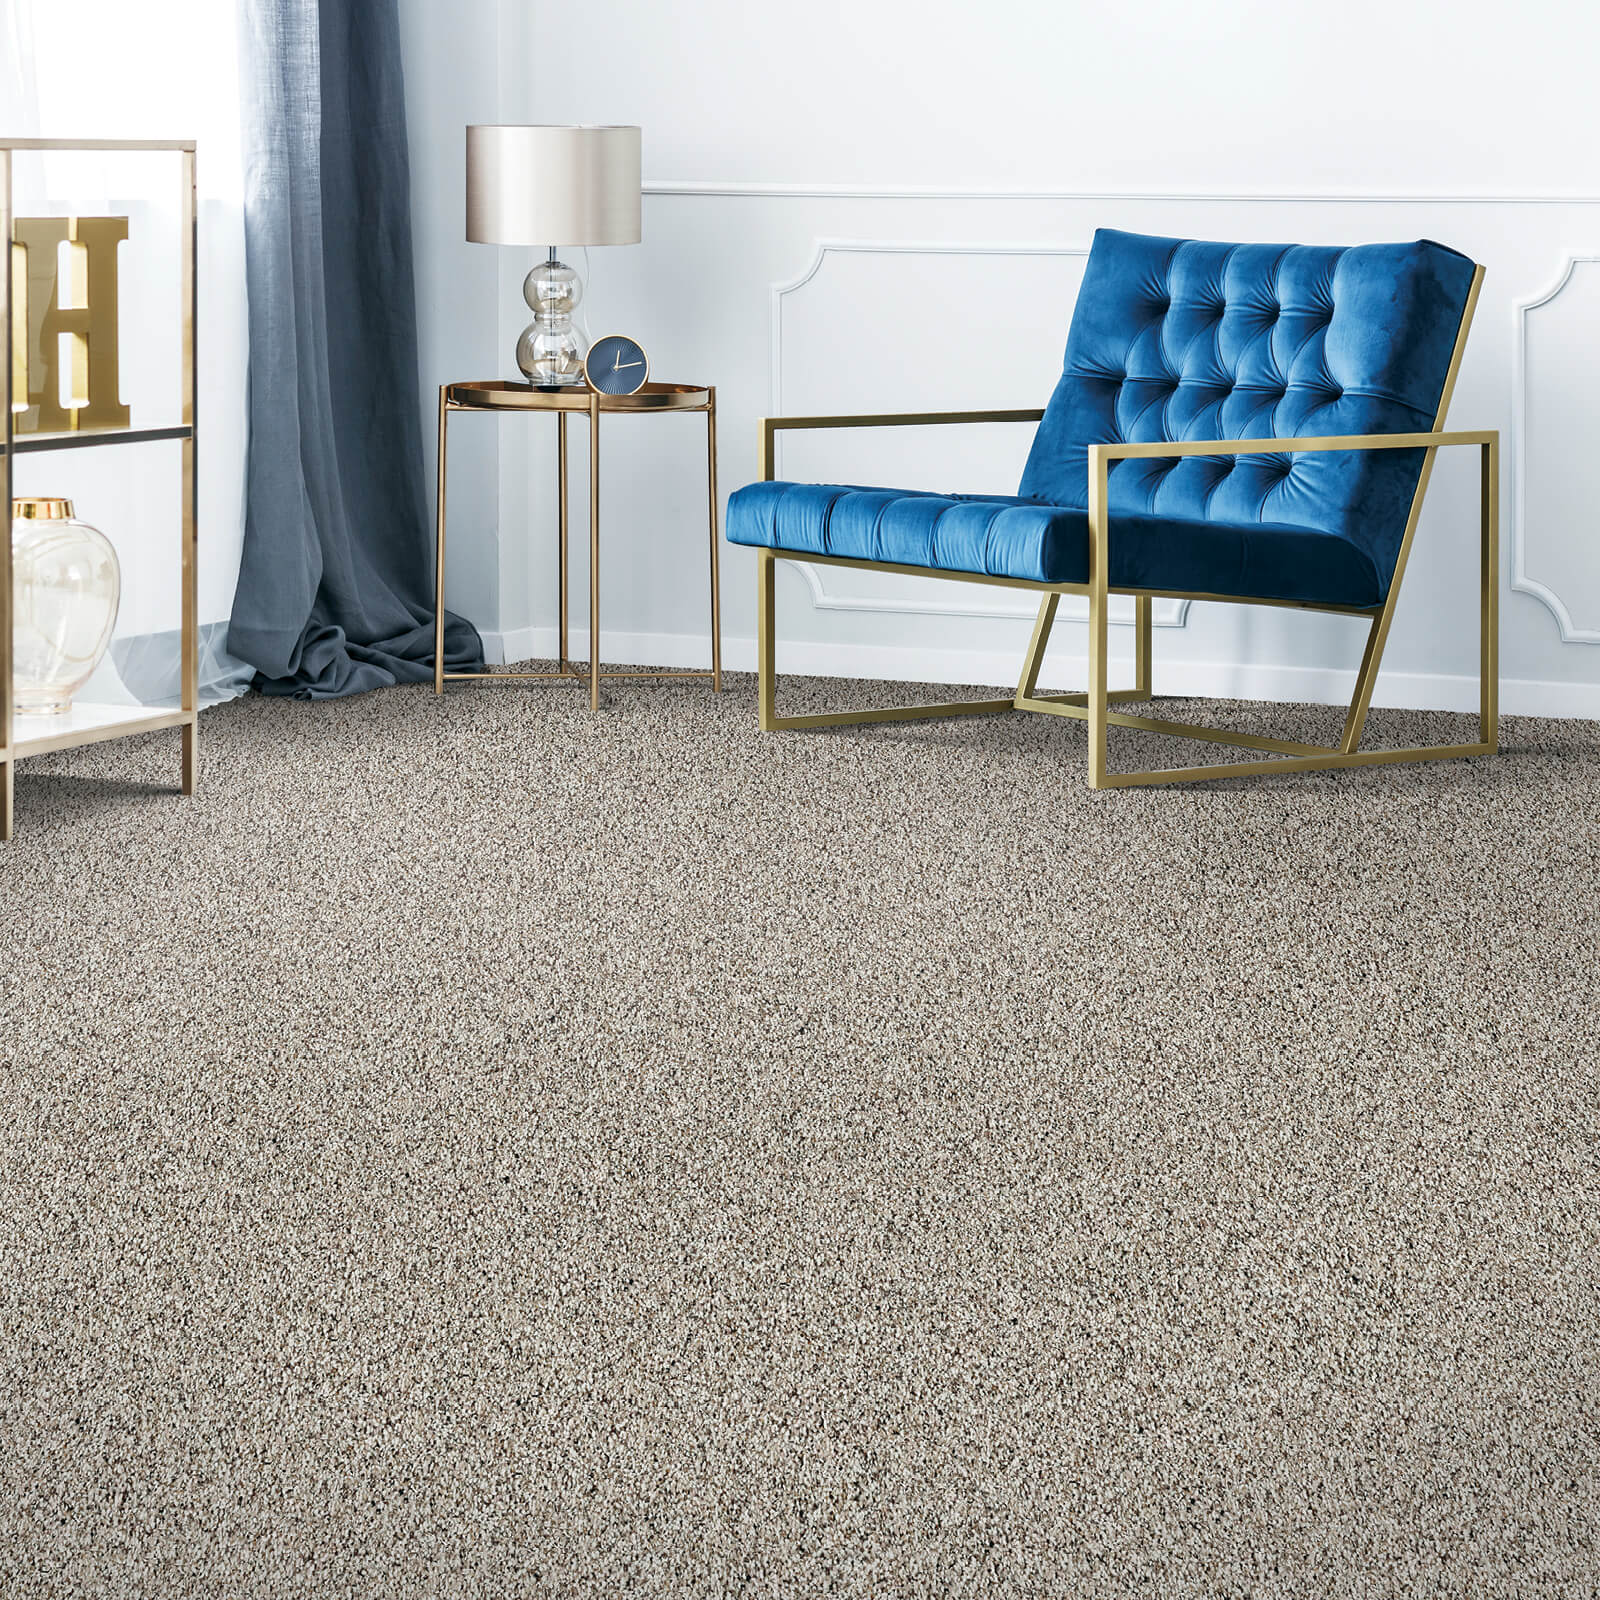 Remarkable vision | The Carpet Stop